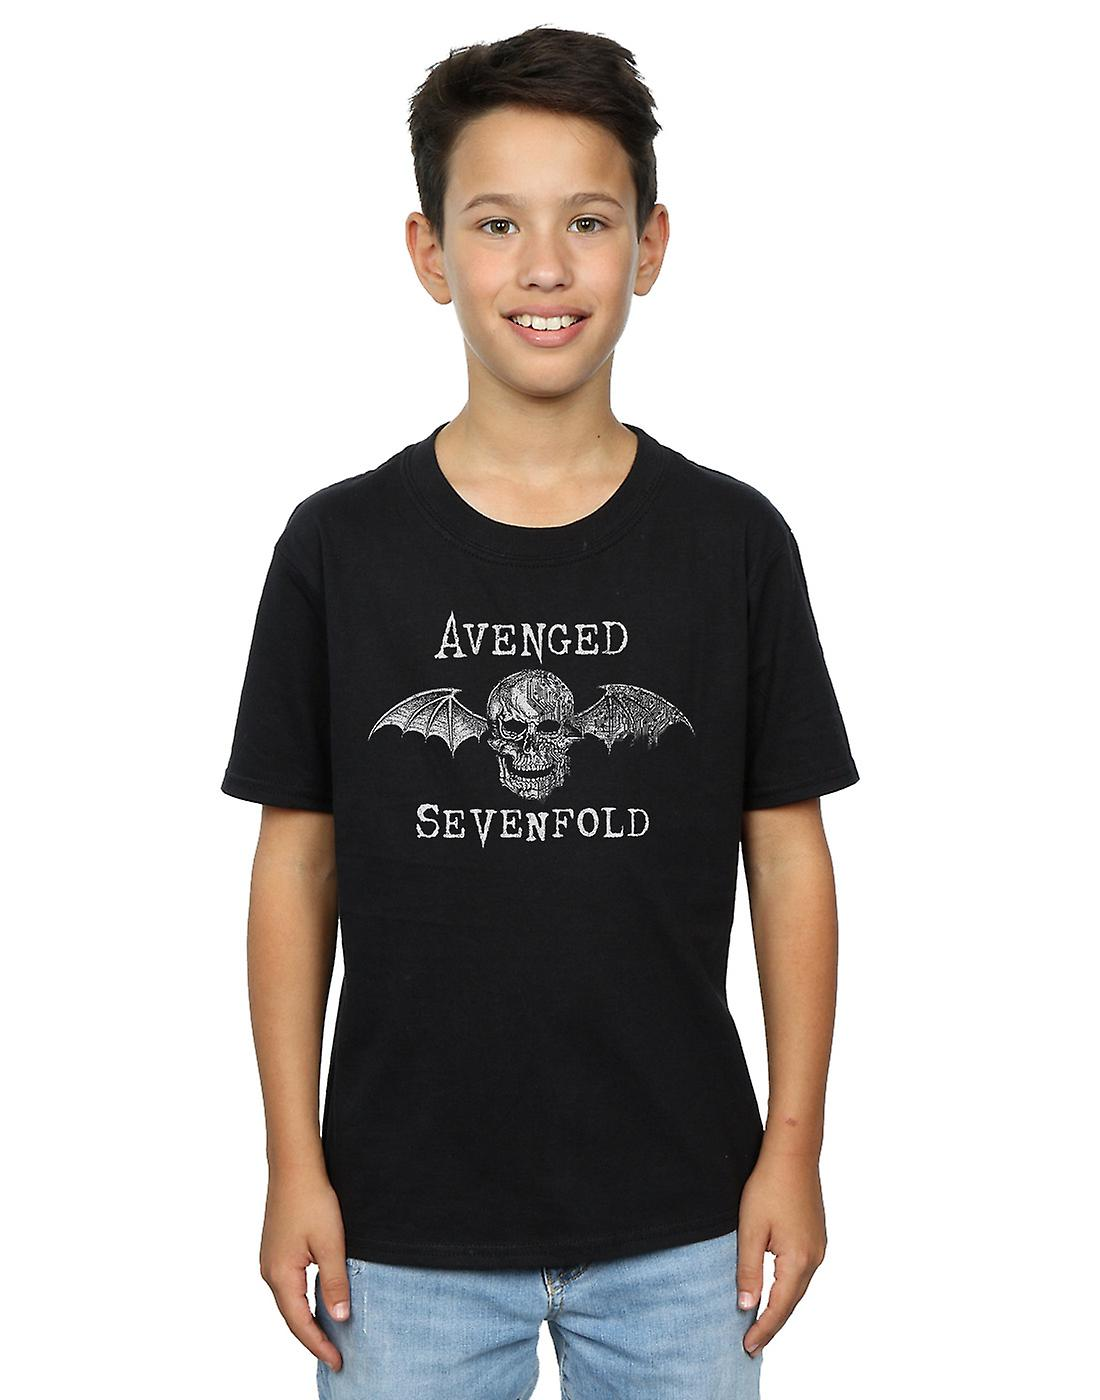 Avenged Sevenfold Boys Cyborg Deathbat T-Shirt